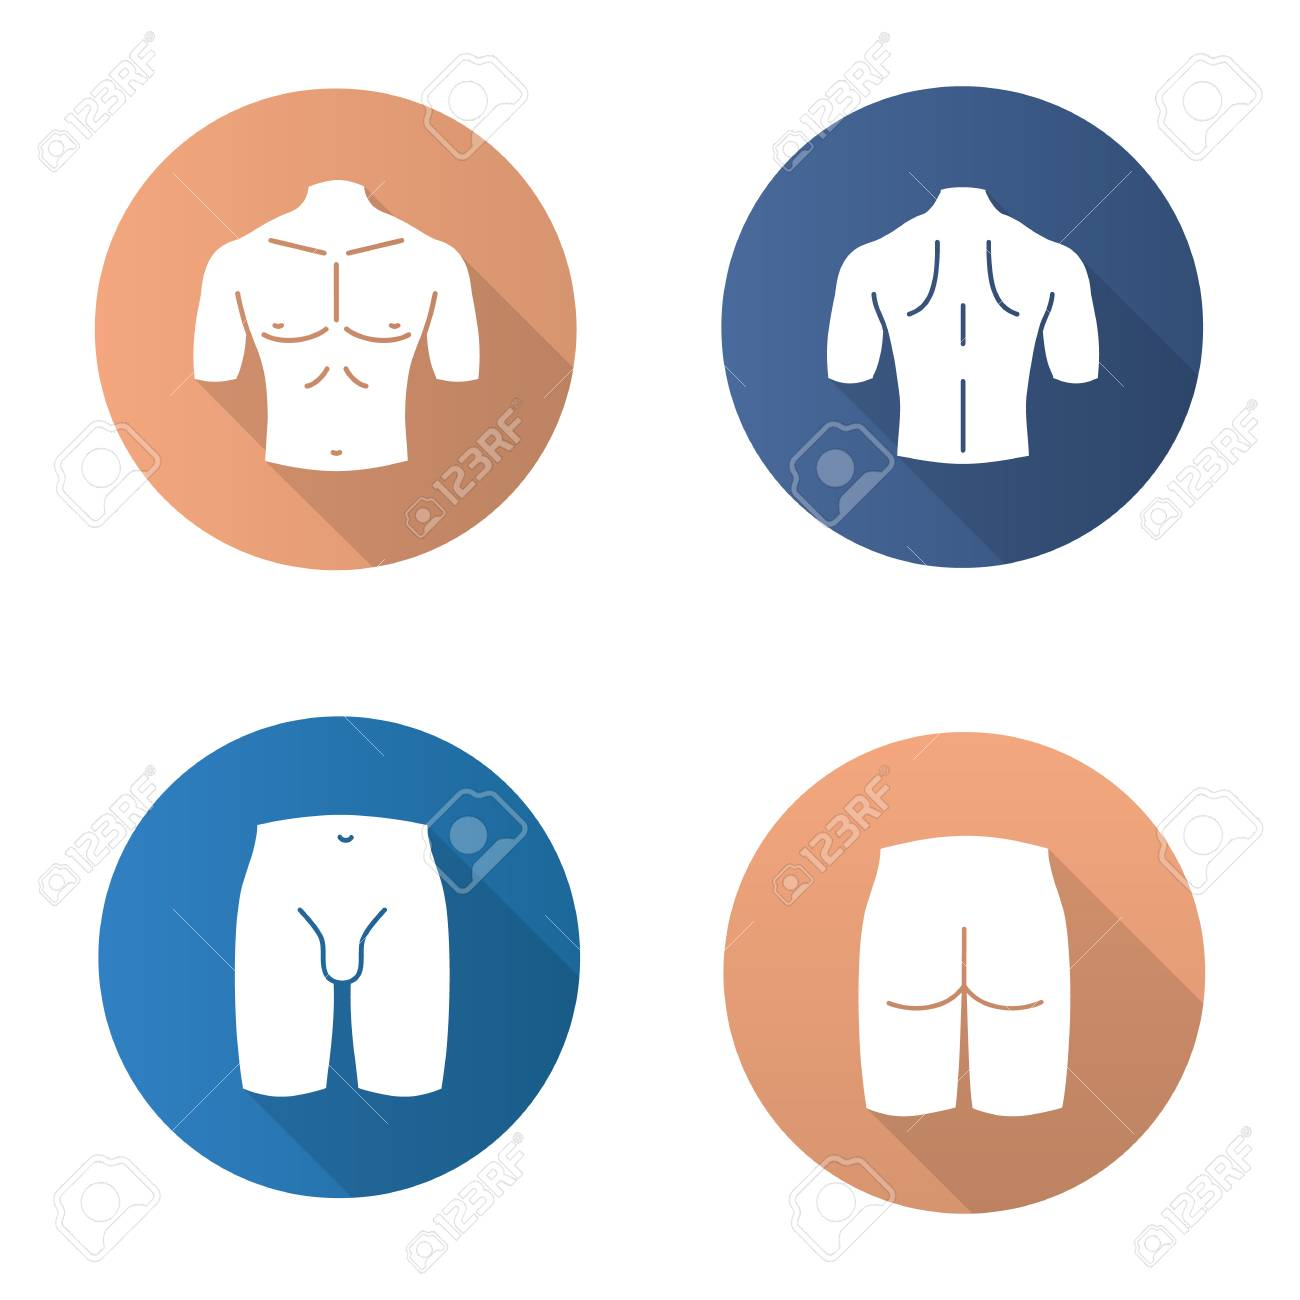 Male body parts flat design long shadow glyph icons set. Muscular chest, back, groin, butt. Vector silhouette illustration - 93335846